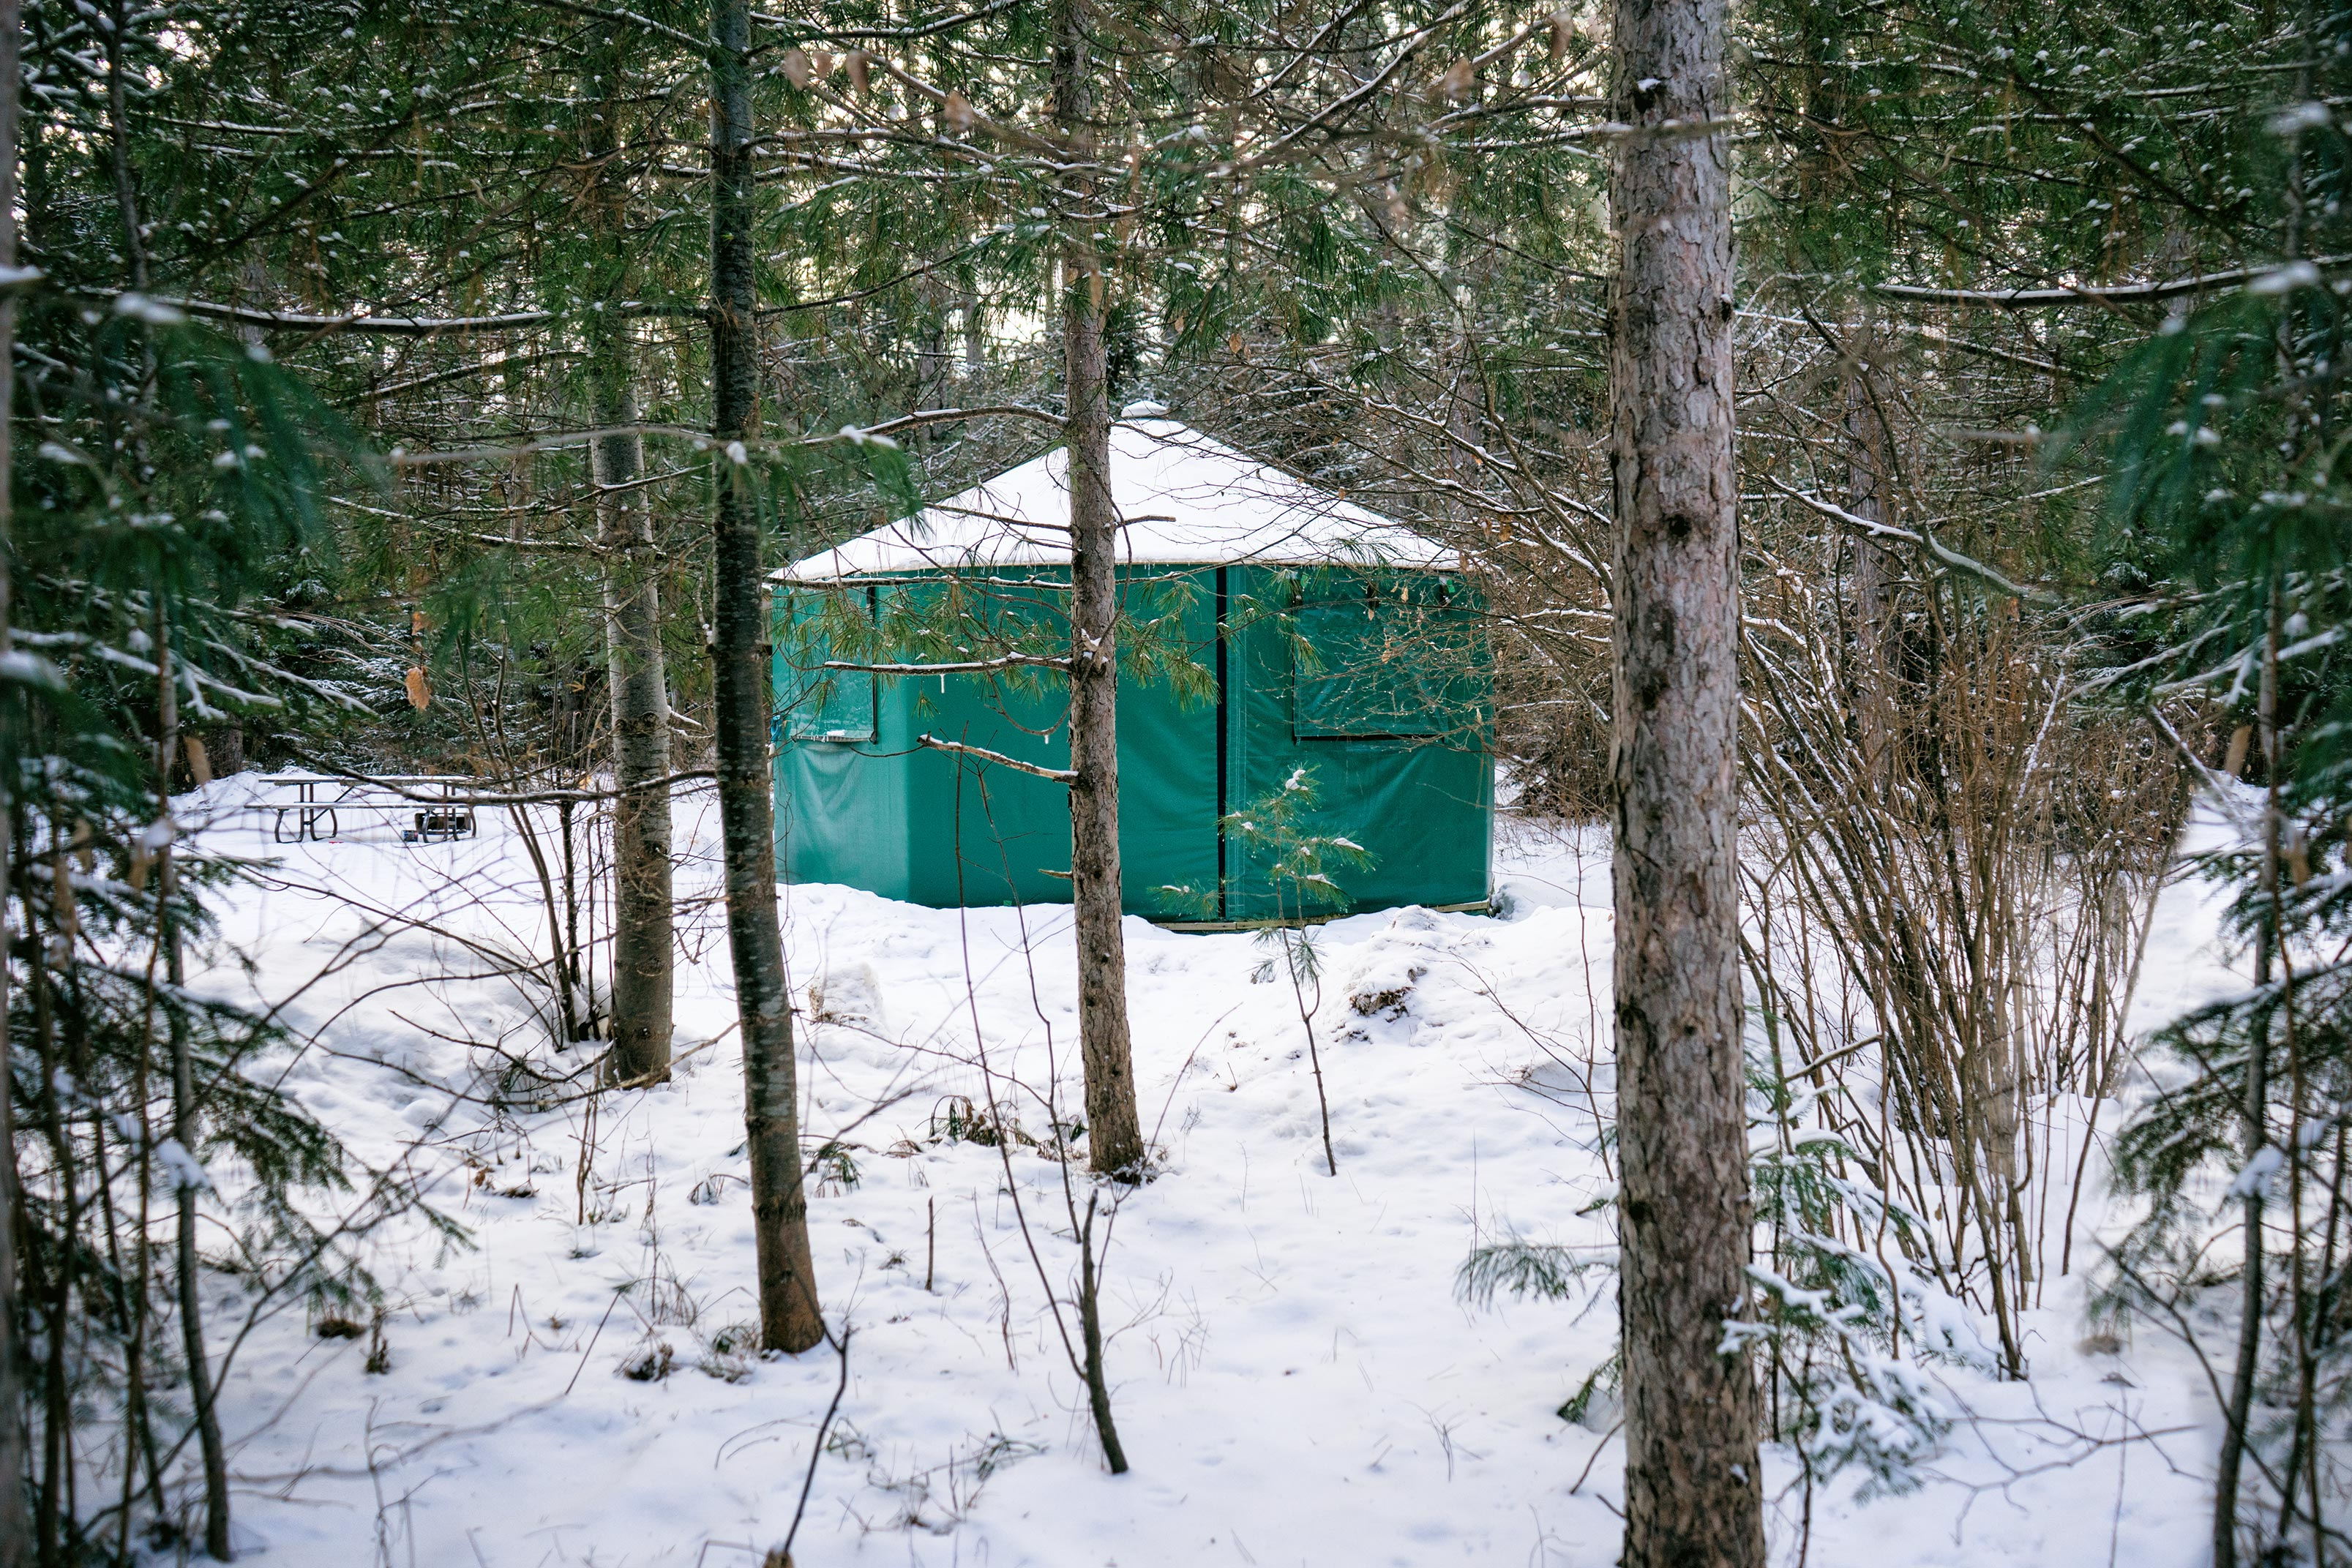 What You Should Know About Winter Yurt Camping in Algonquin Park